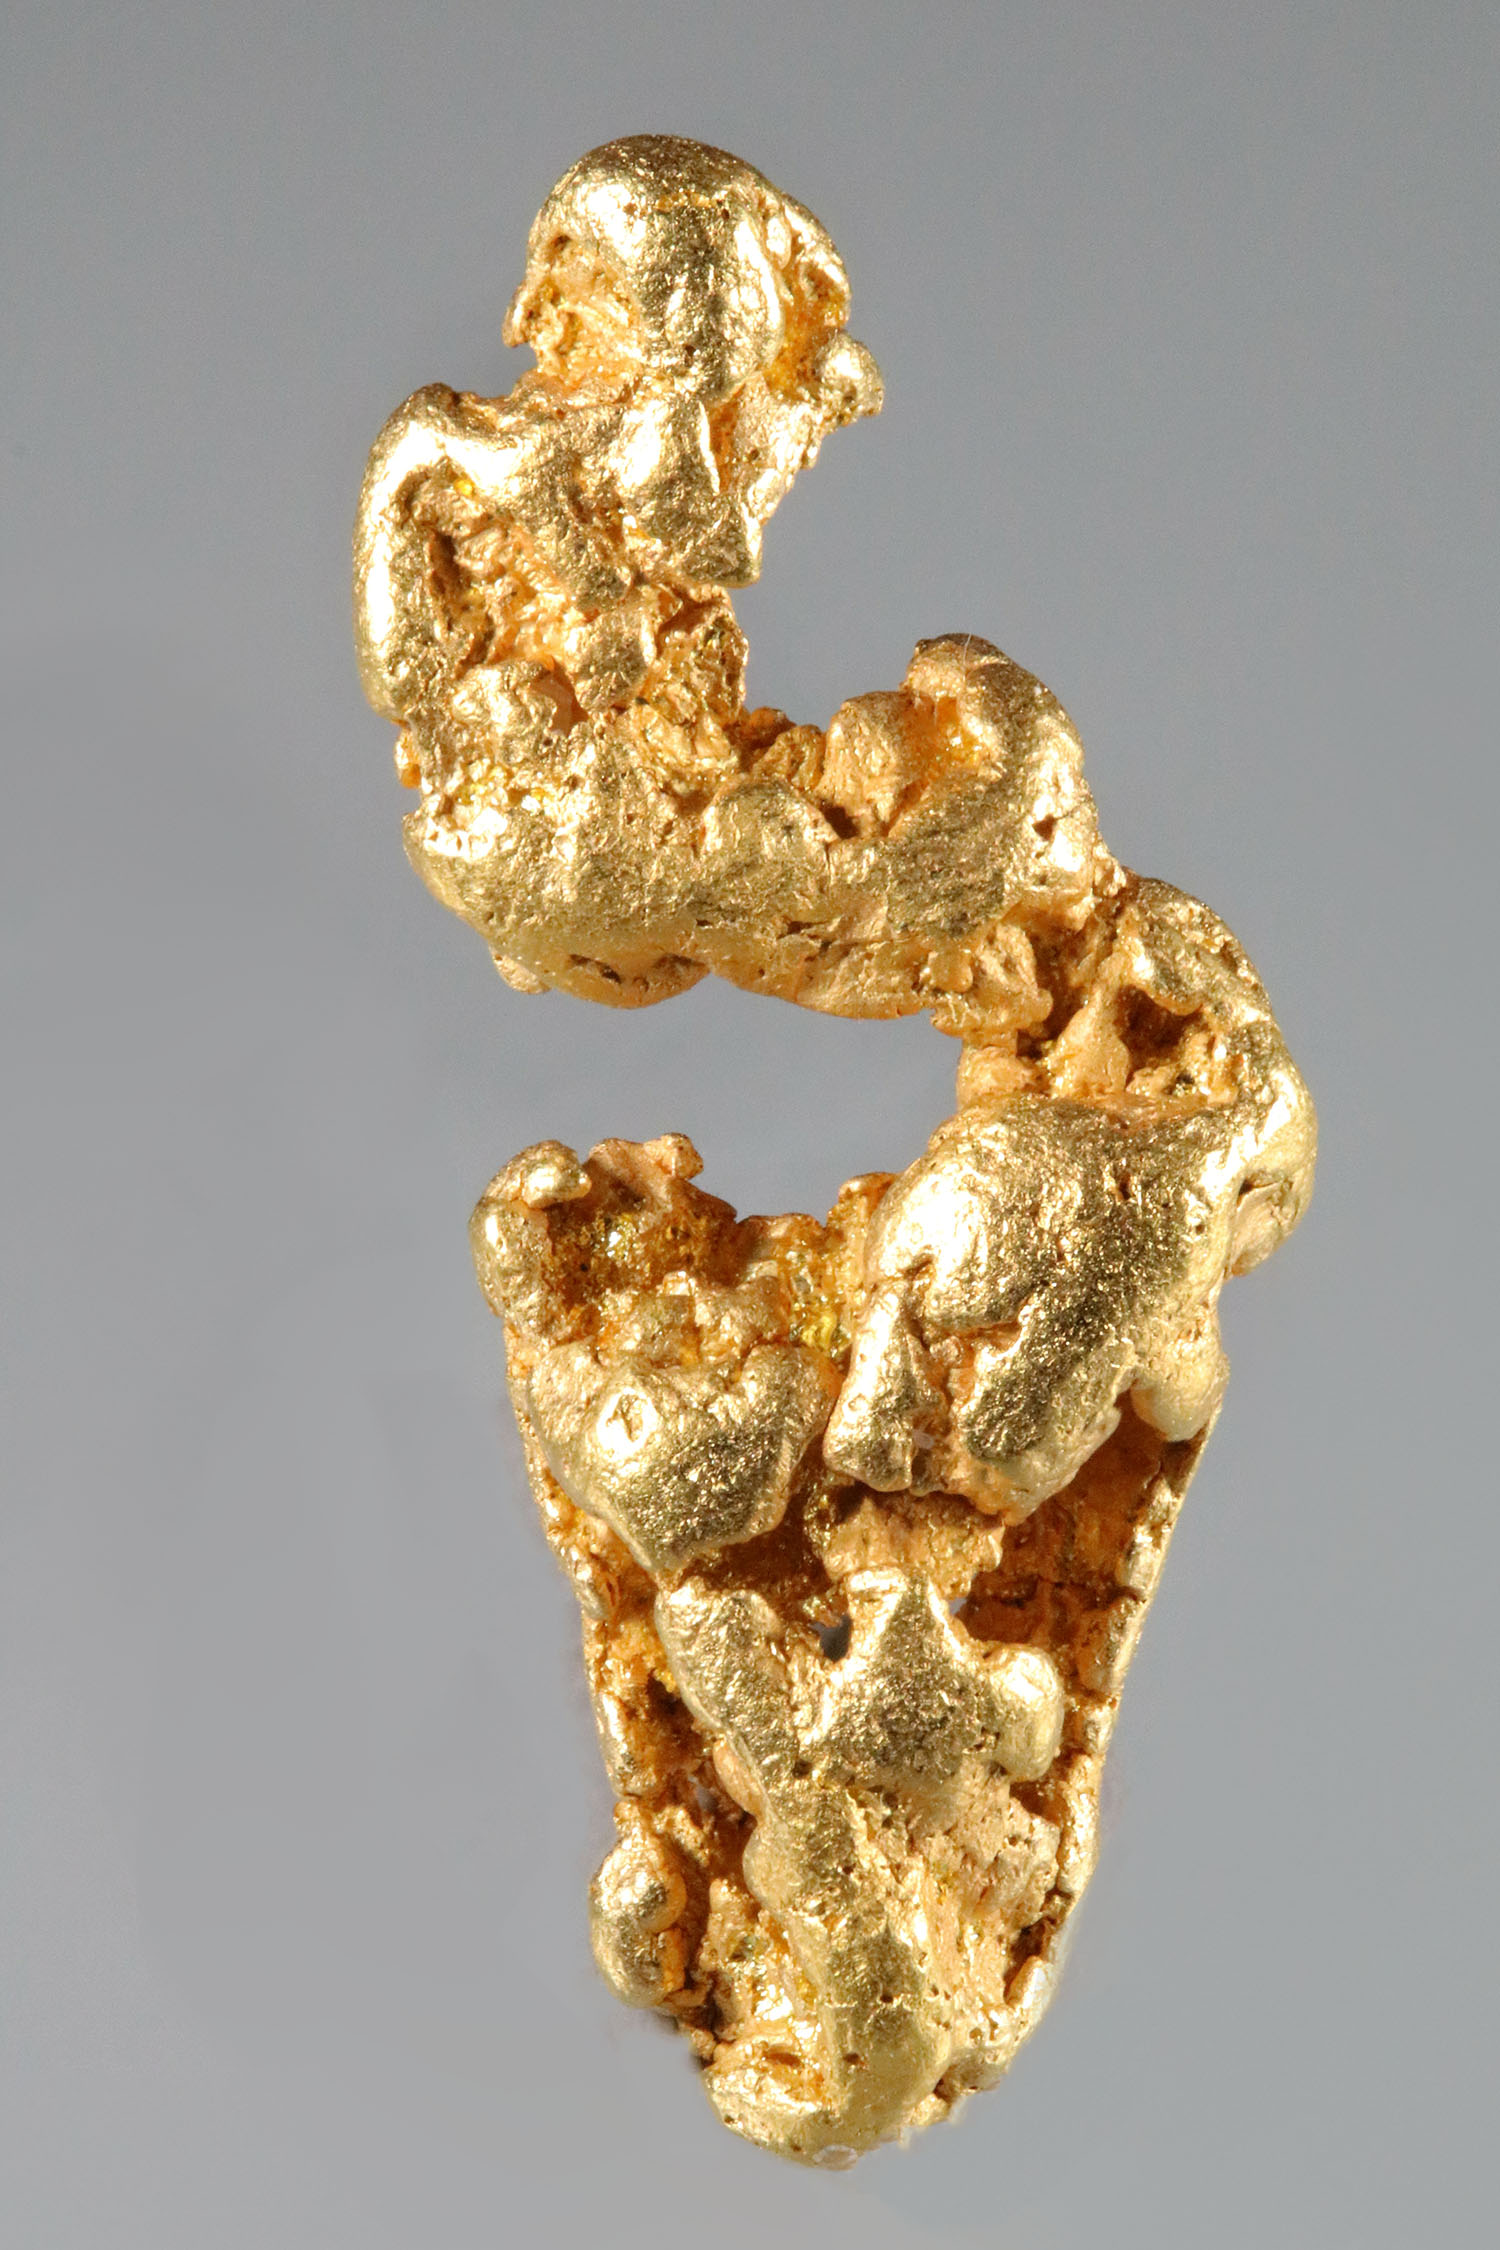 Yukon Gold Nugget with a Spectacular Curved Formation